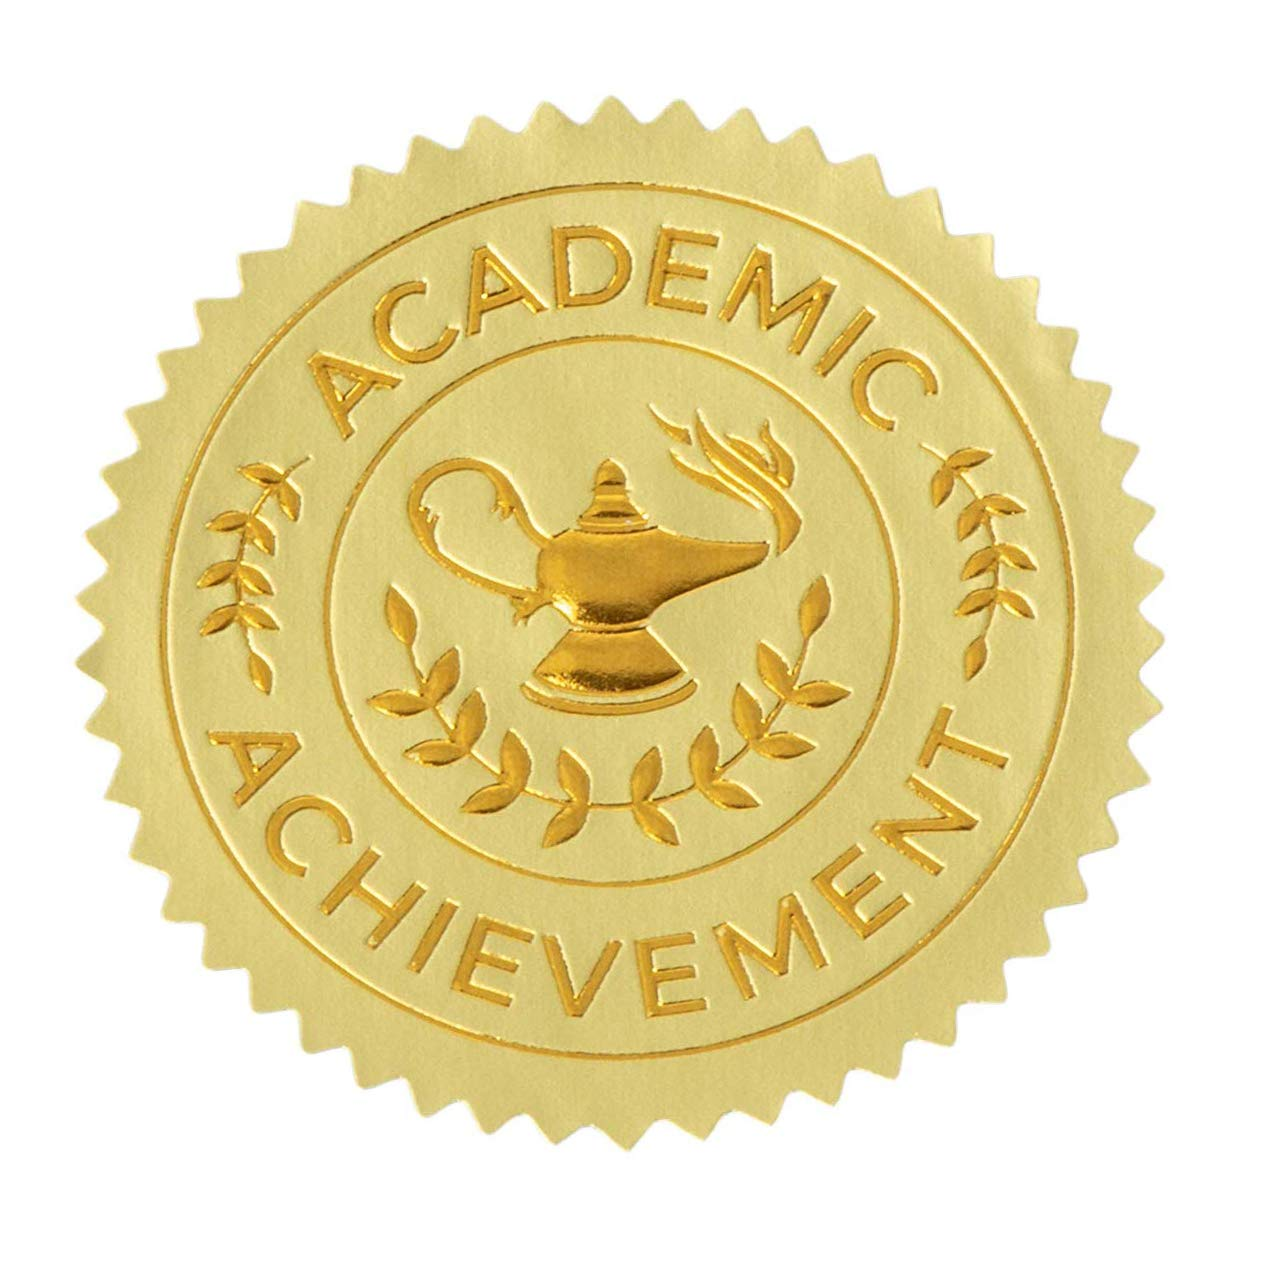 Sustainable greetings academic achievement award sticker 1 7 inches set of 96